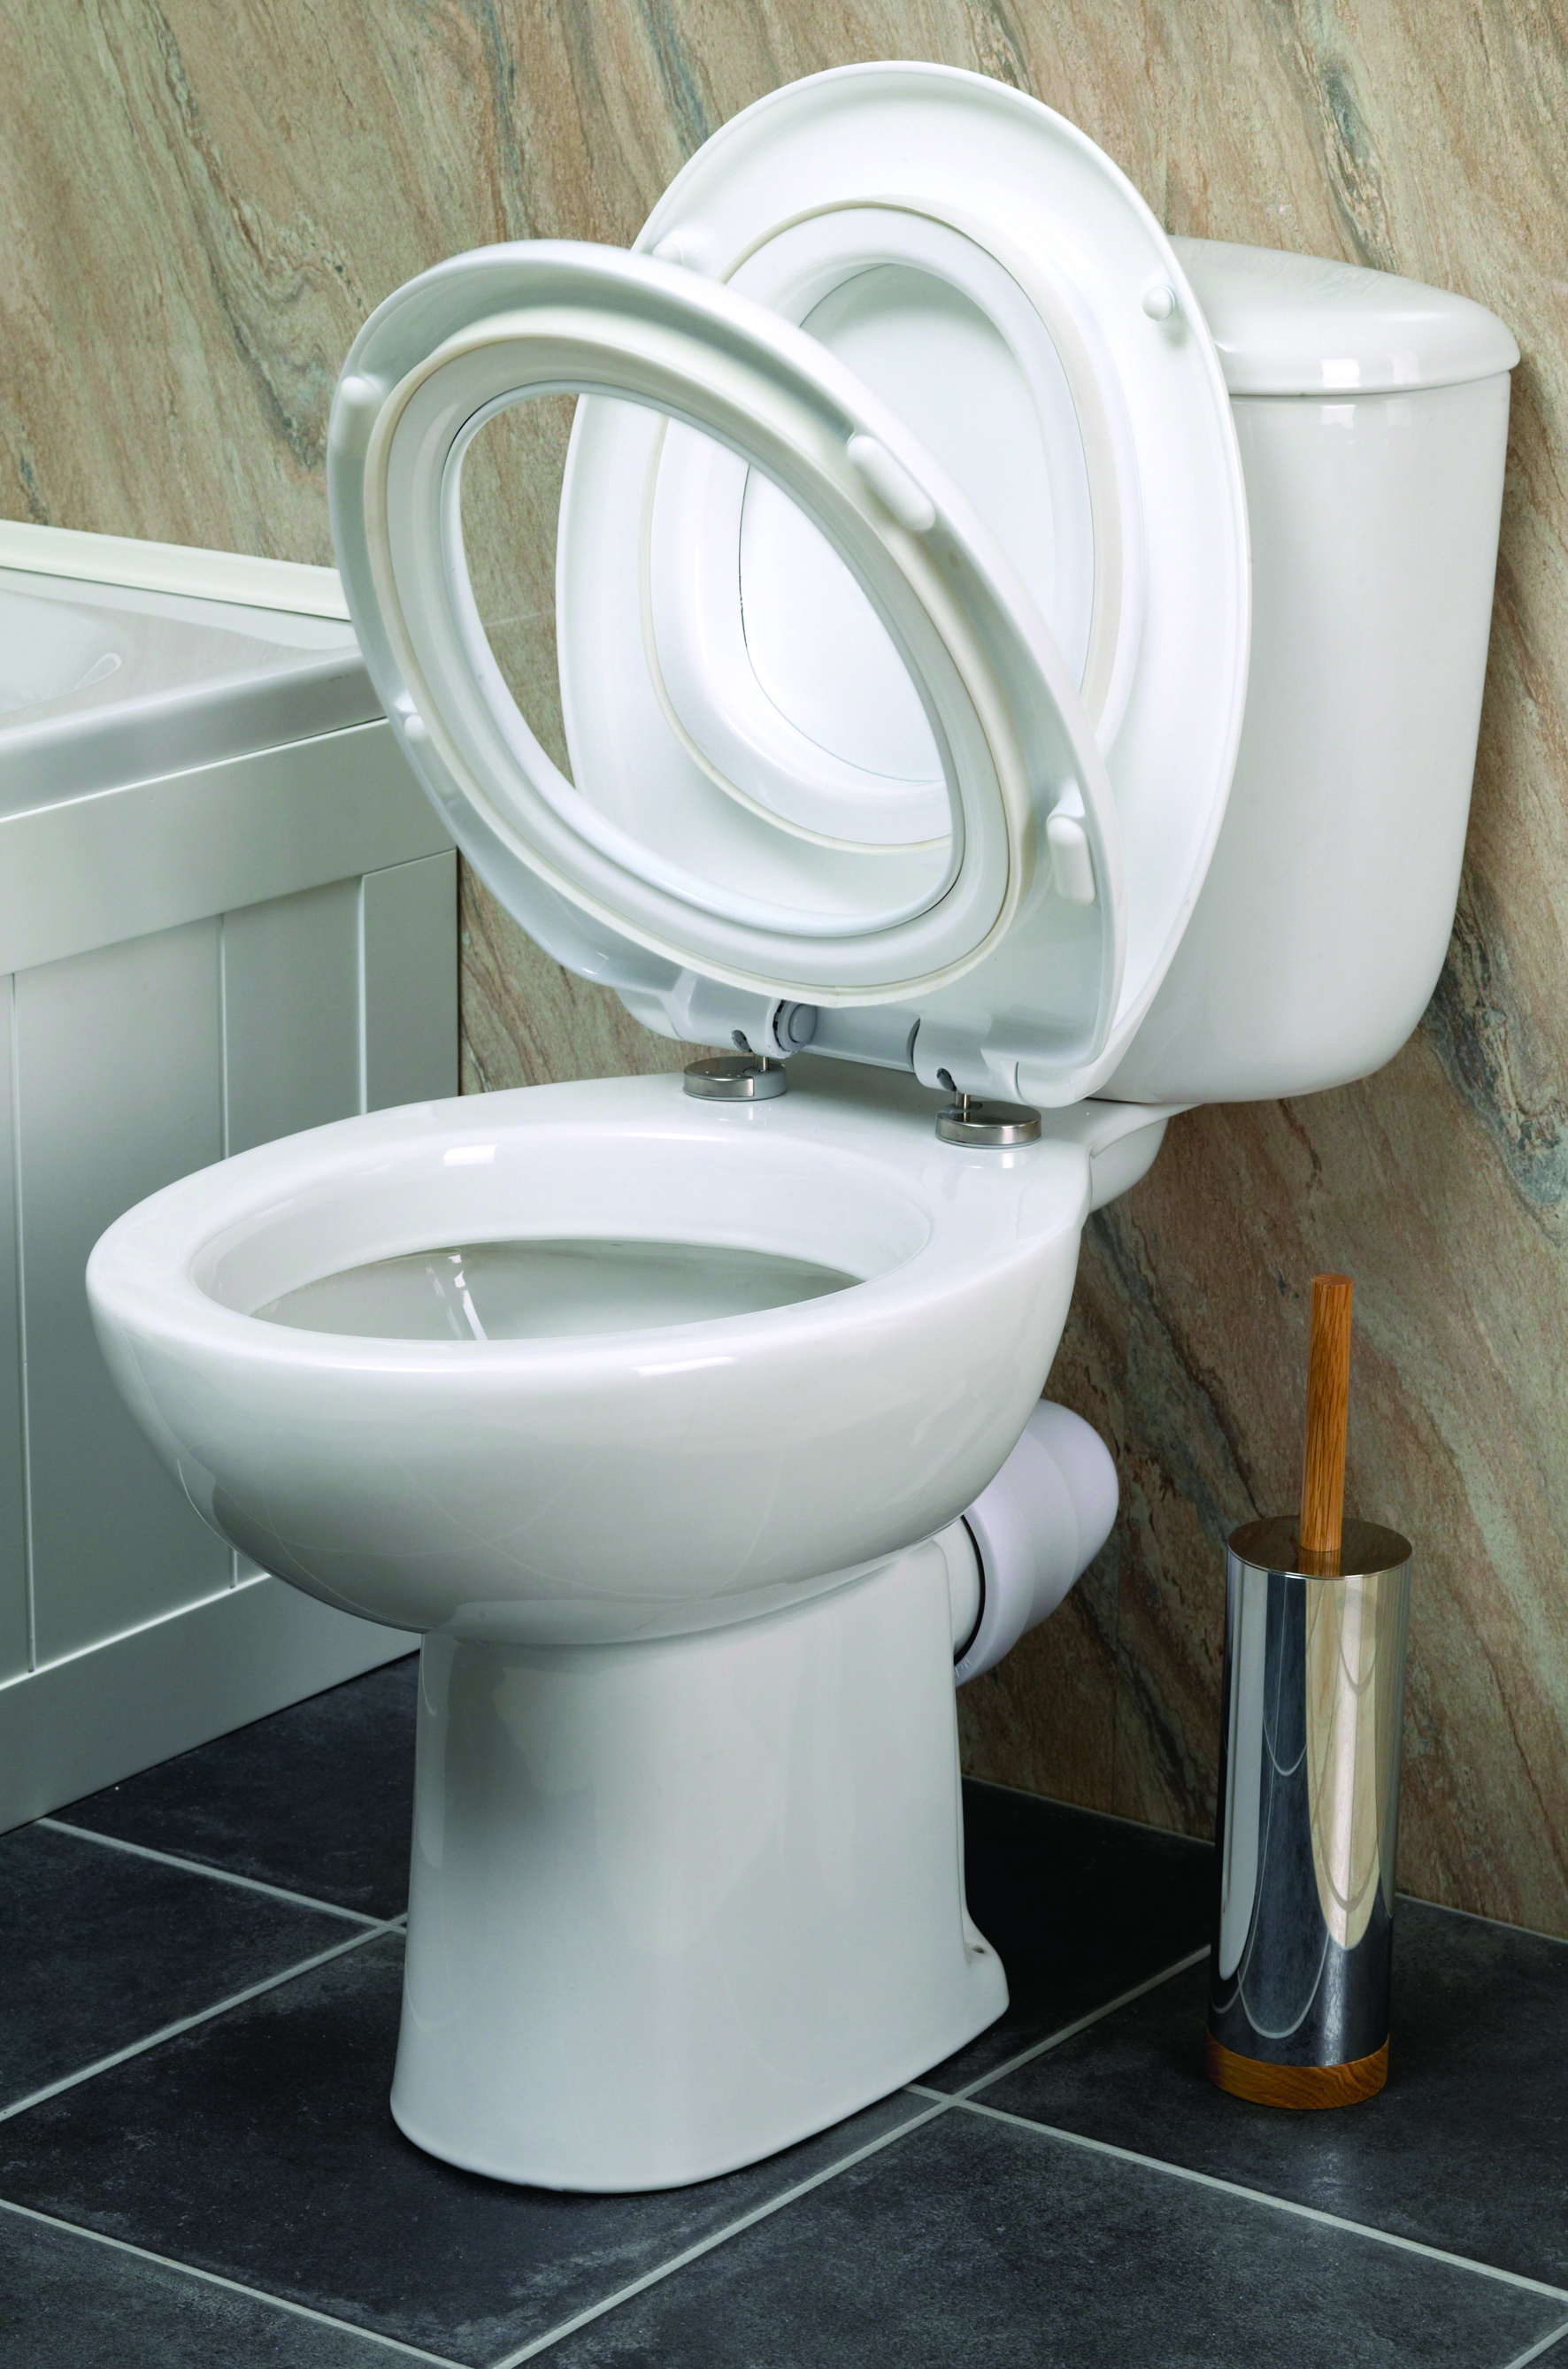 Choosing the Perfect Toilet Seat